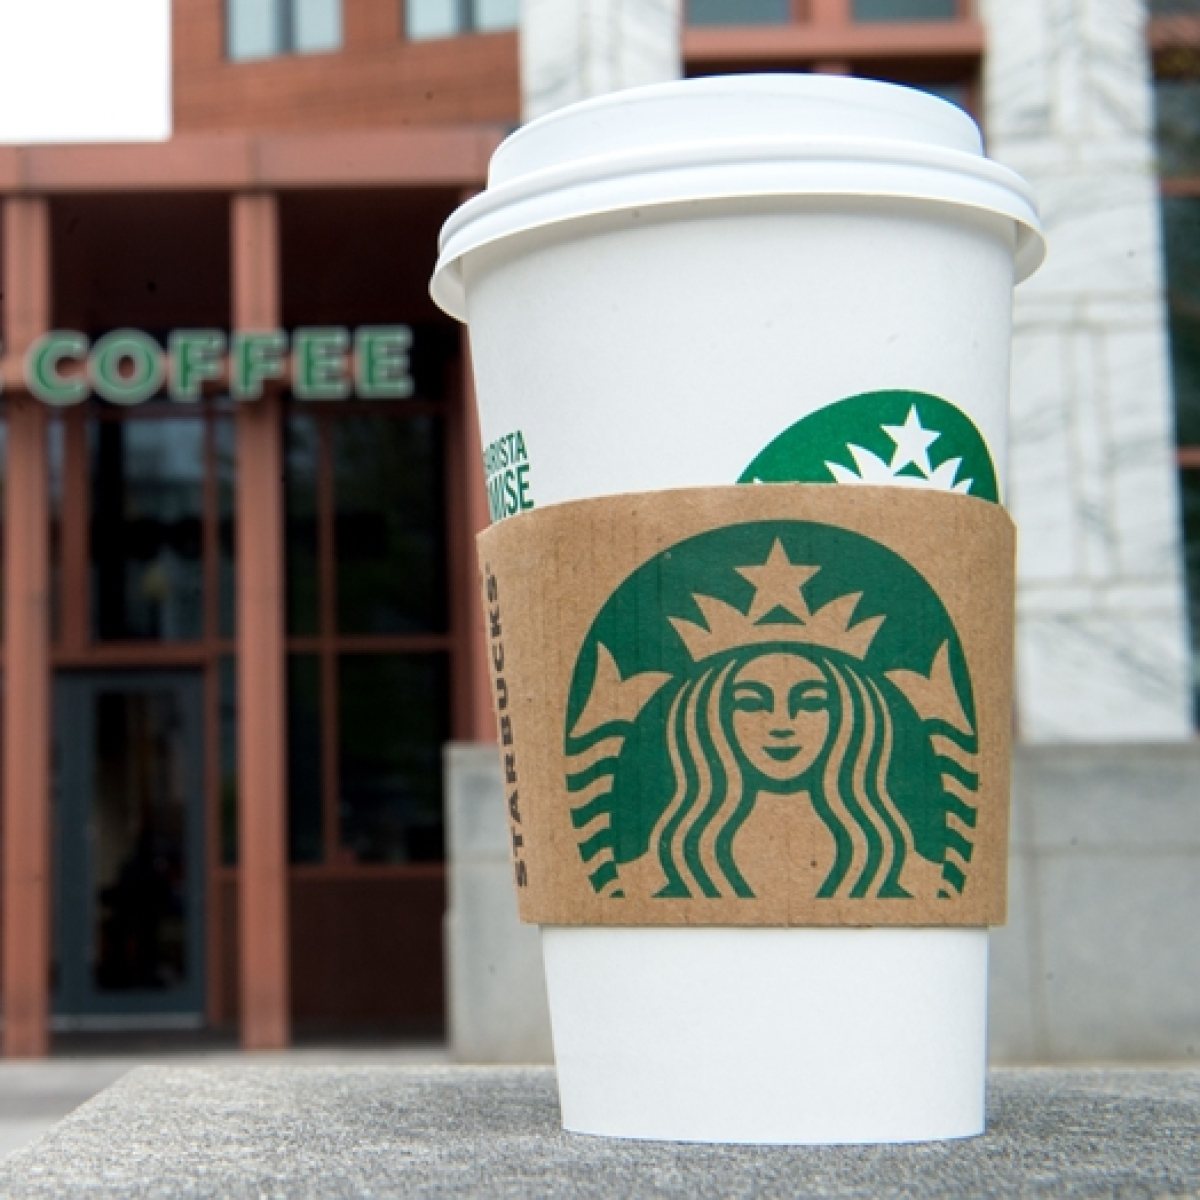 Tata Starbucks resumes takeaway, home delivery services in 8 cities